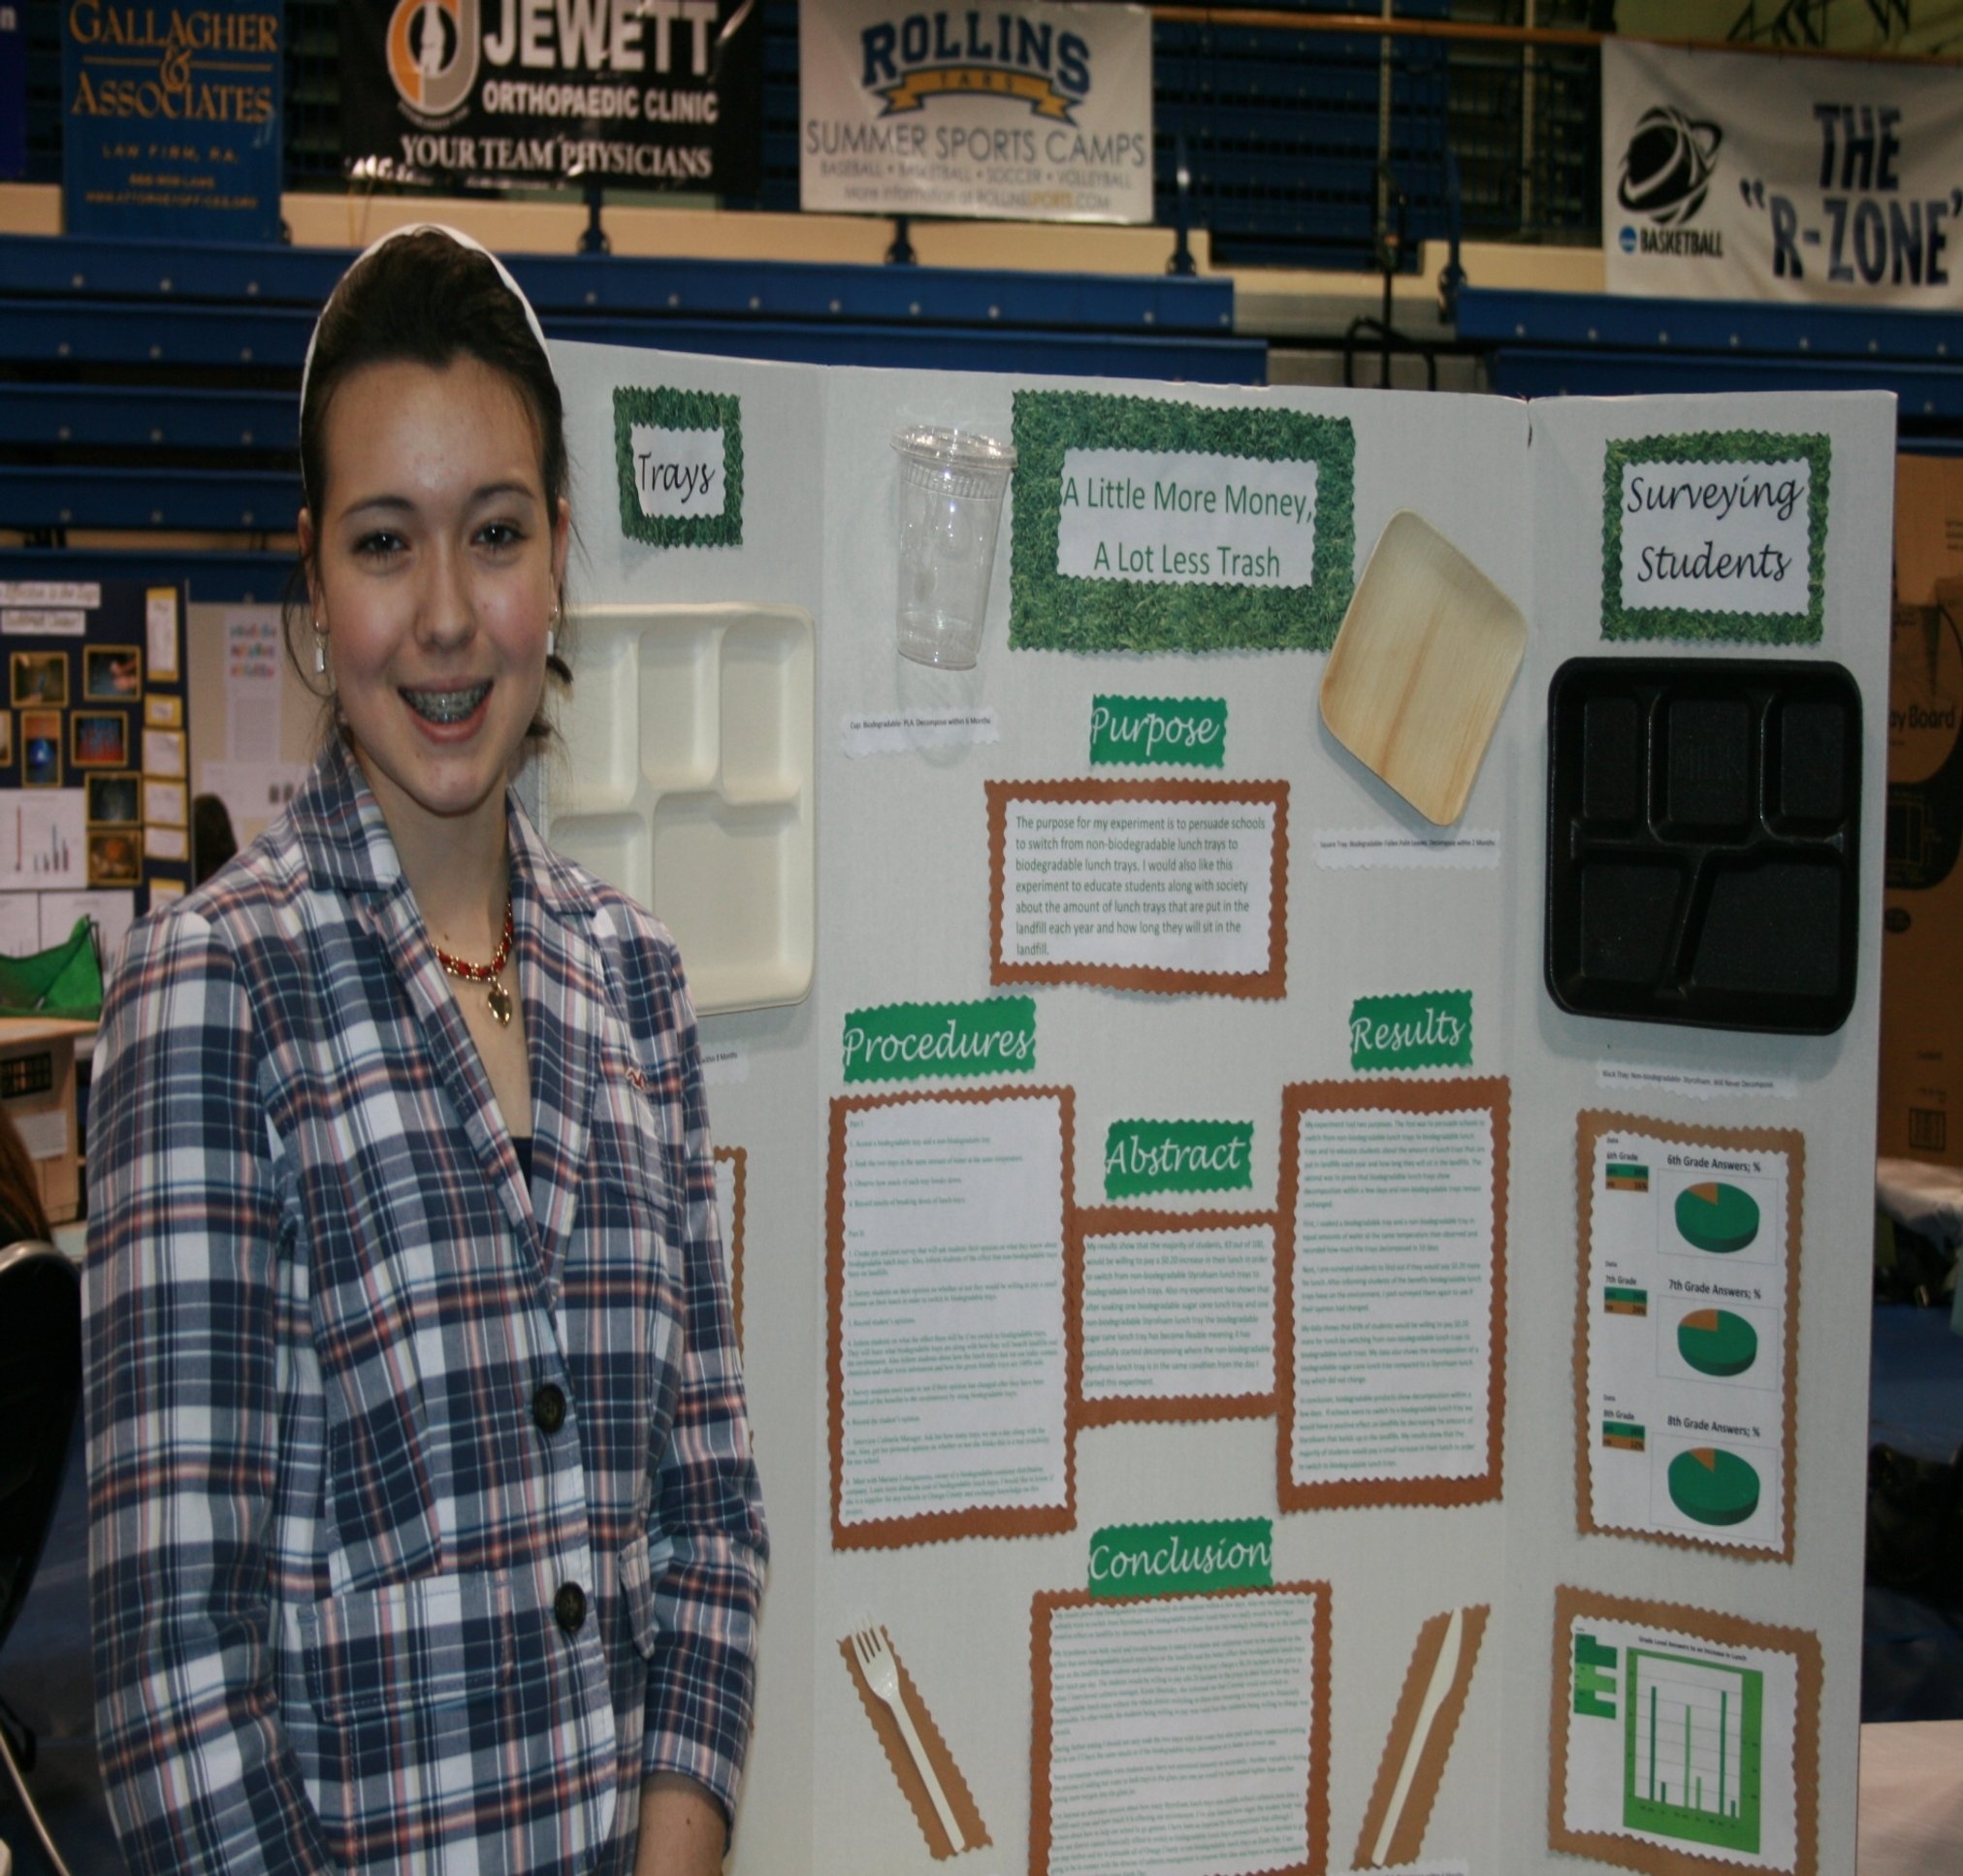 10 Attractive Science Fair Project Ideas For 8Th Grade List 8th grade science project ideas list homeshealth 35 2020